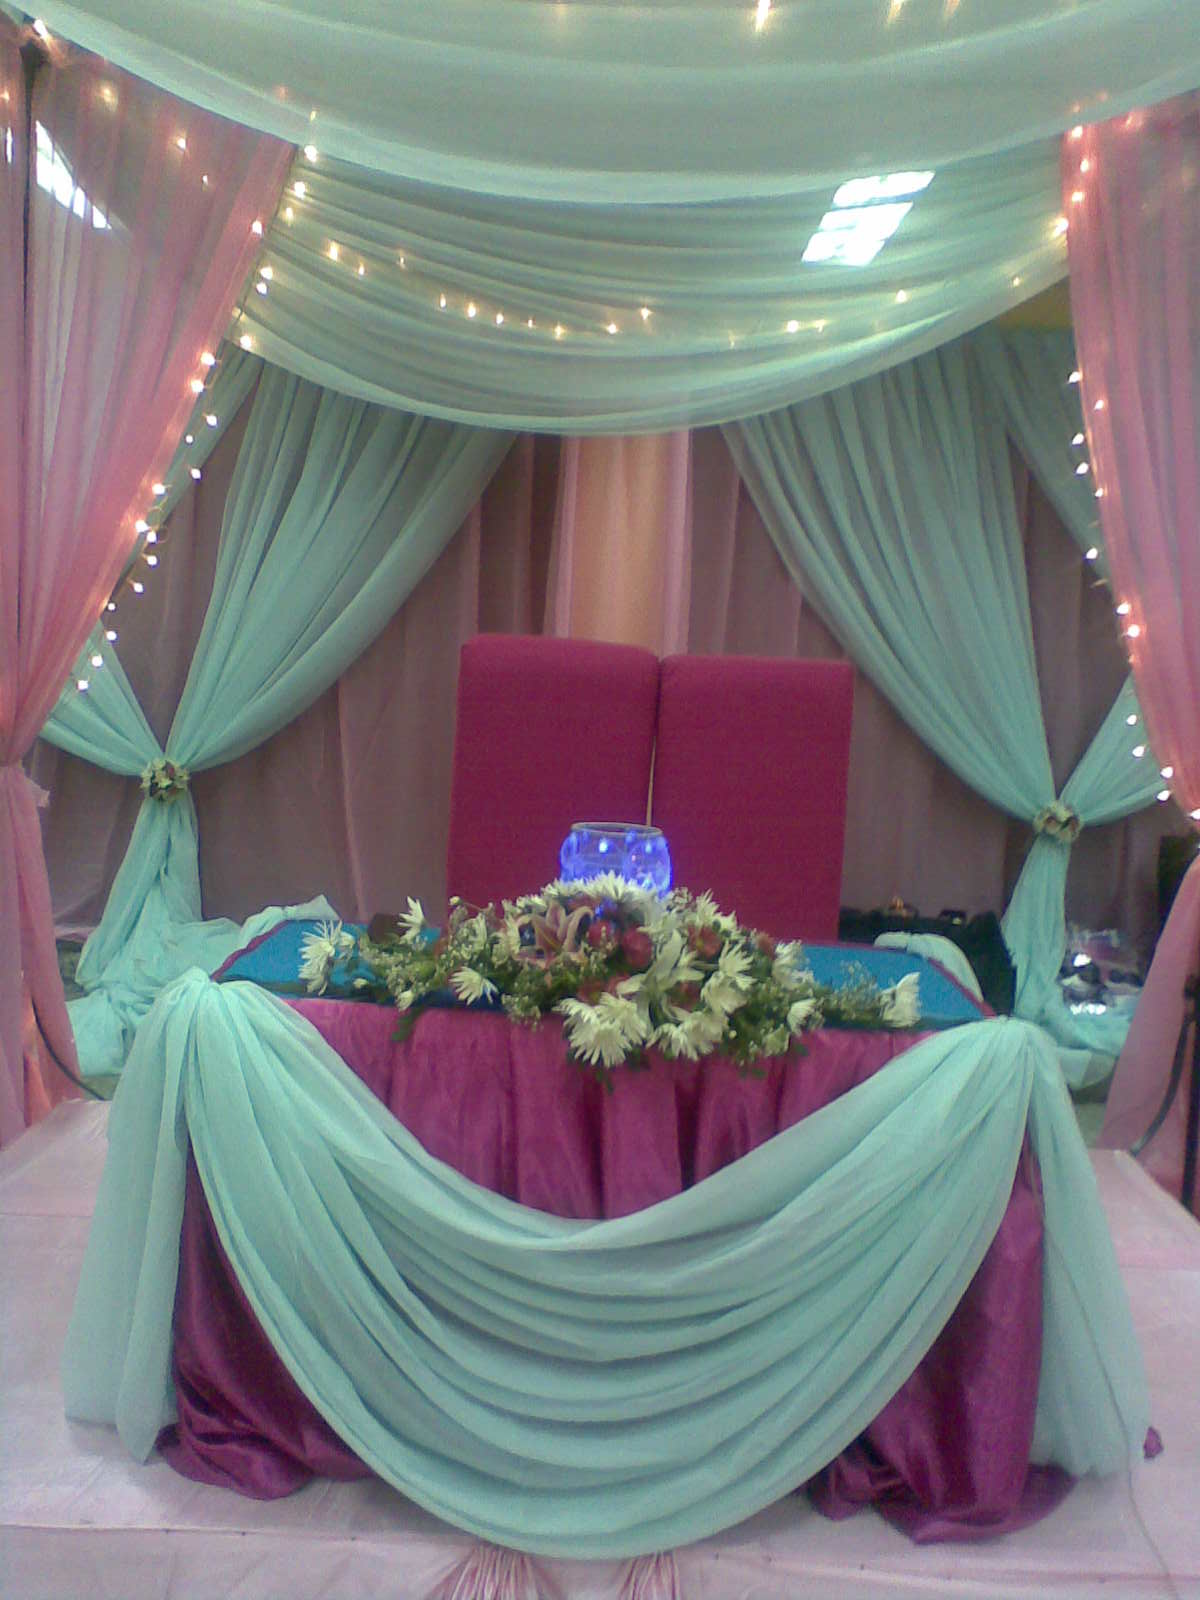 Kings Event and Interior Decoration: Exquisite Wedding Decorations